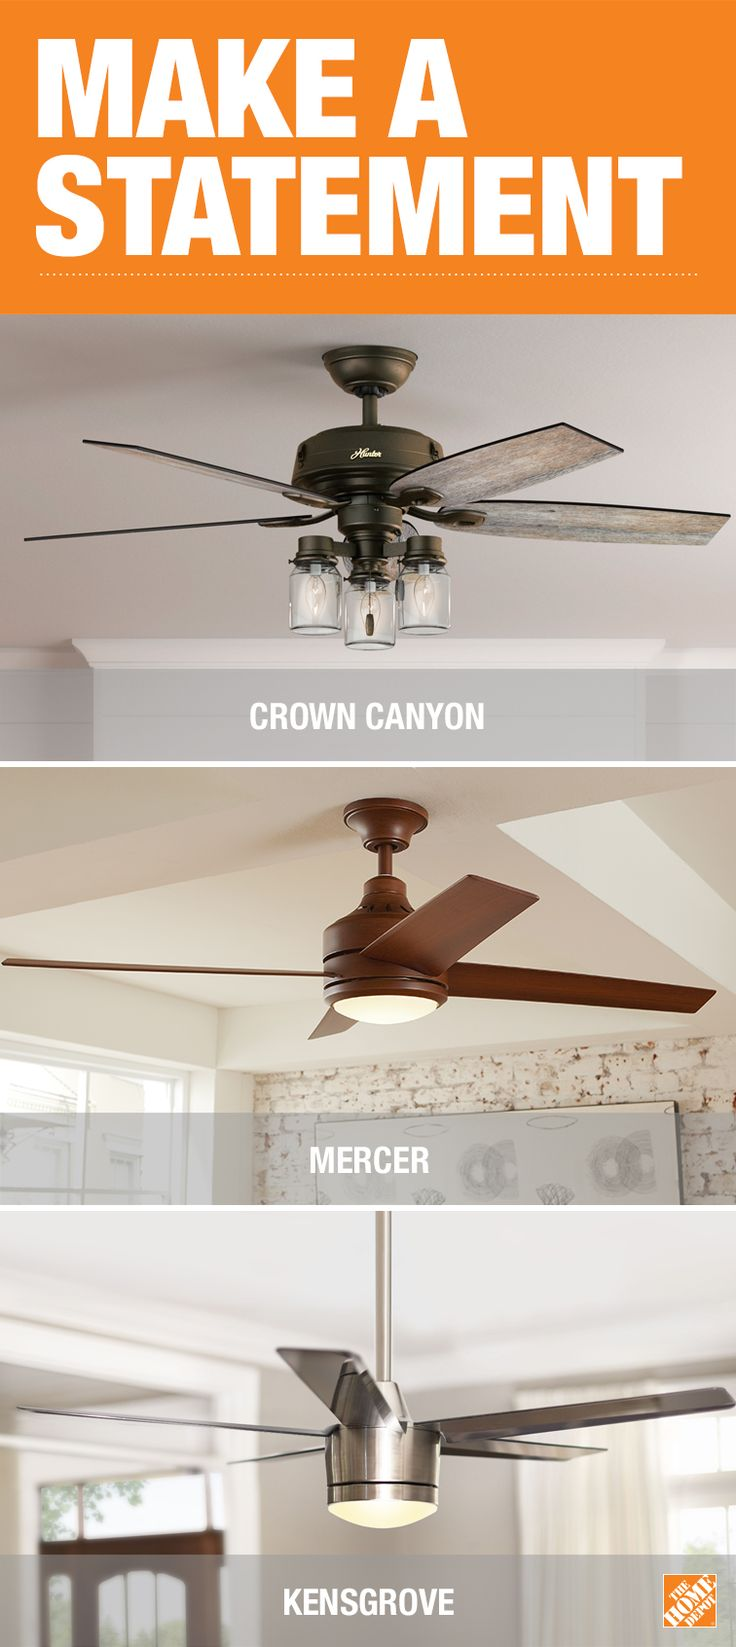 Make a décor statement with your ceiling fan. The Crown Canyon fan features Mason jar-inspired shades with distressed blades. The Mercer features rich koa wood-look blades. The sleek and modern profile of the Merwry offers a fresh take on the traditional ceiling fan. Check out all the styles and finishes of ceiling fans at The Home Depot that look great while stirring up a breeze.